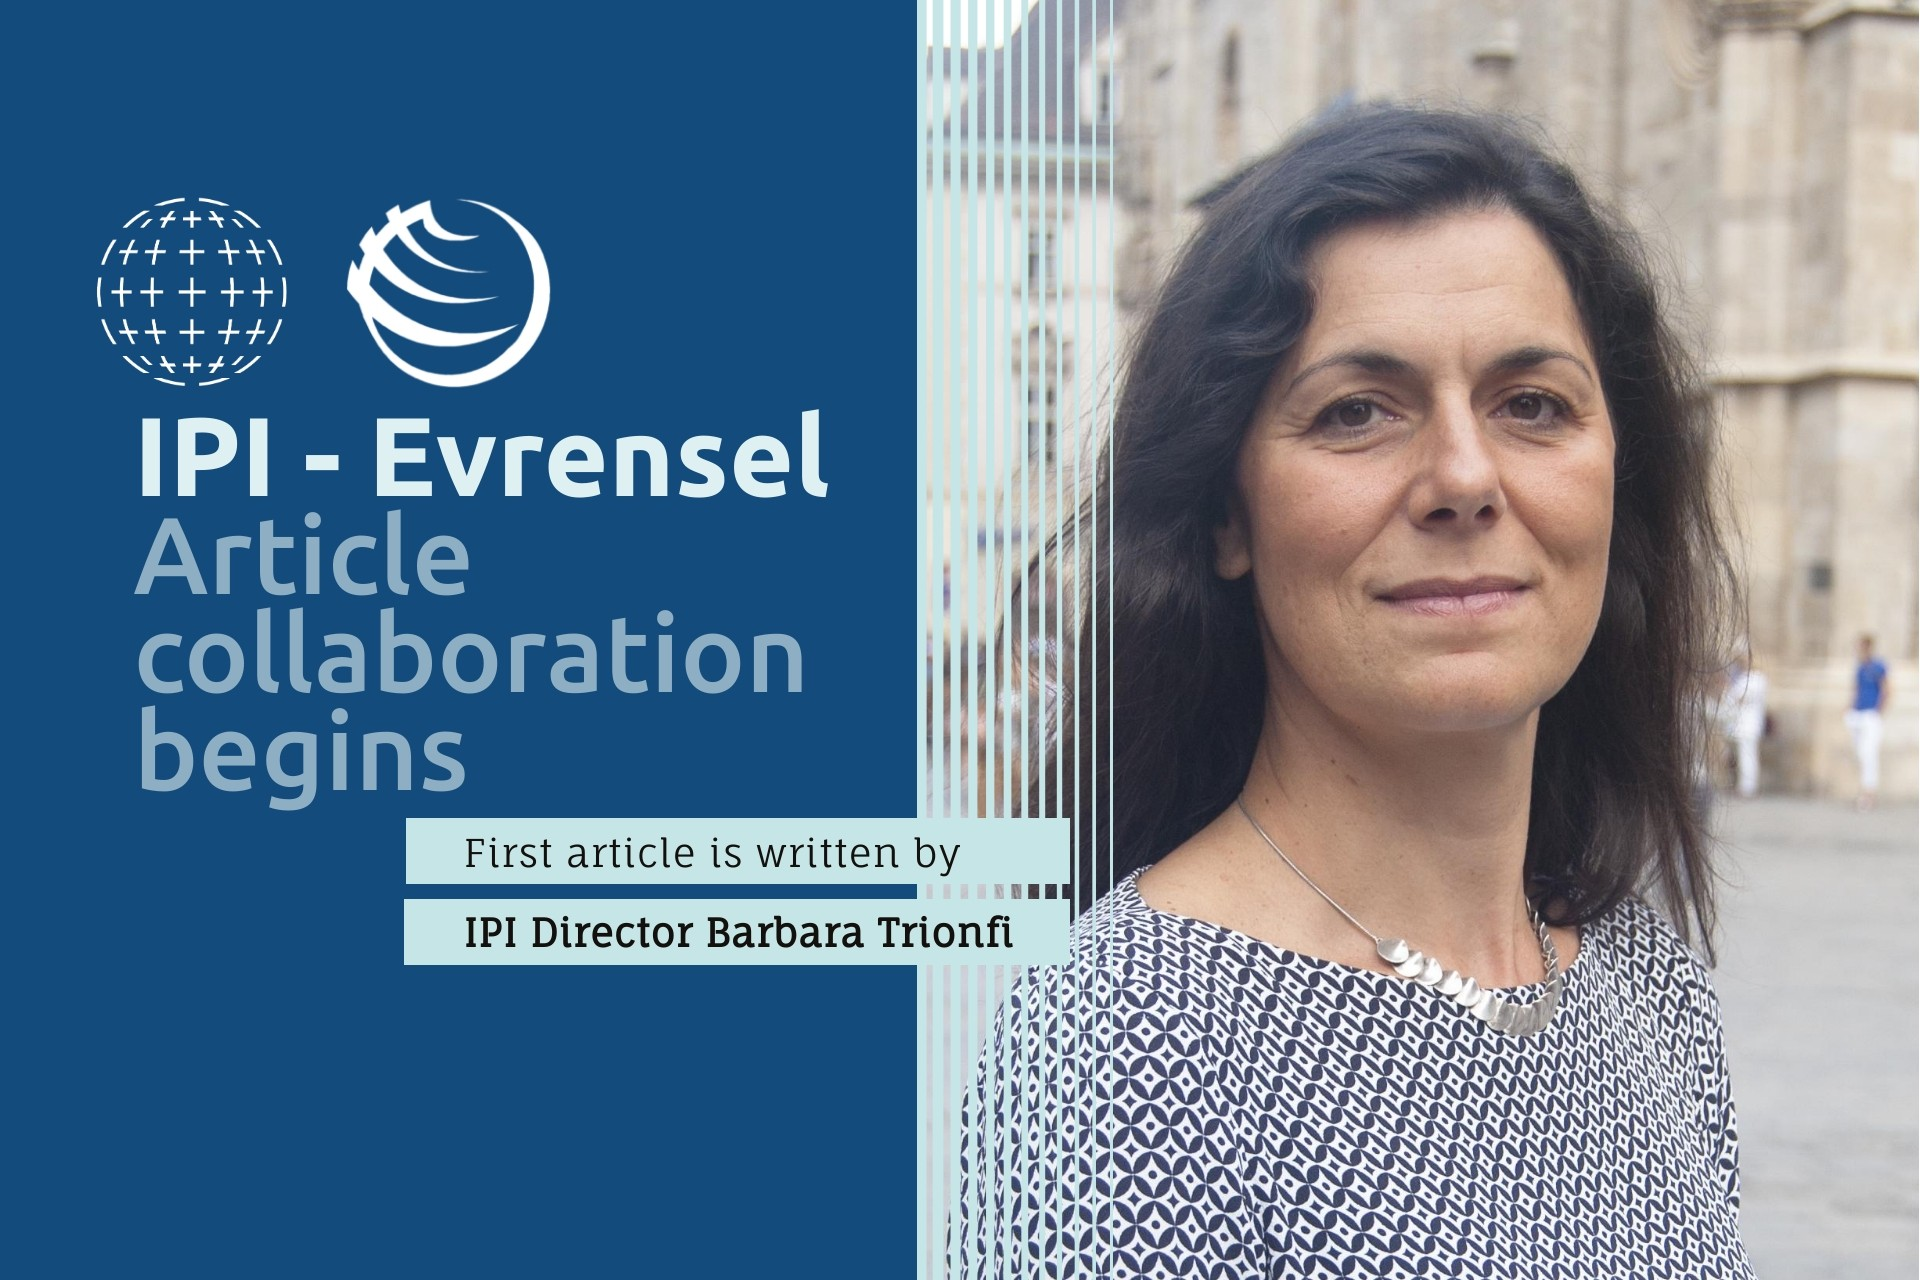 IPI - Evrensel article collaboration begins